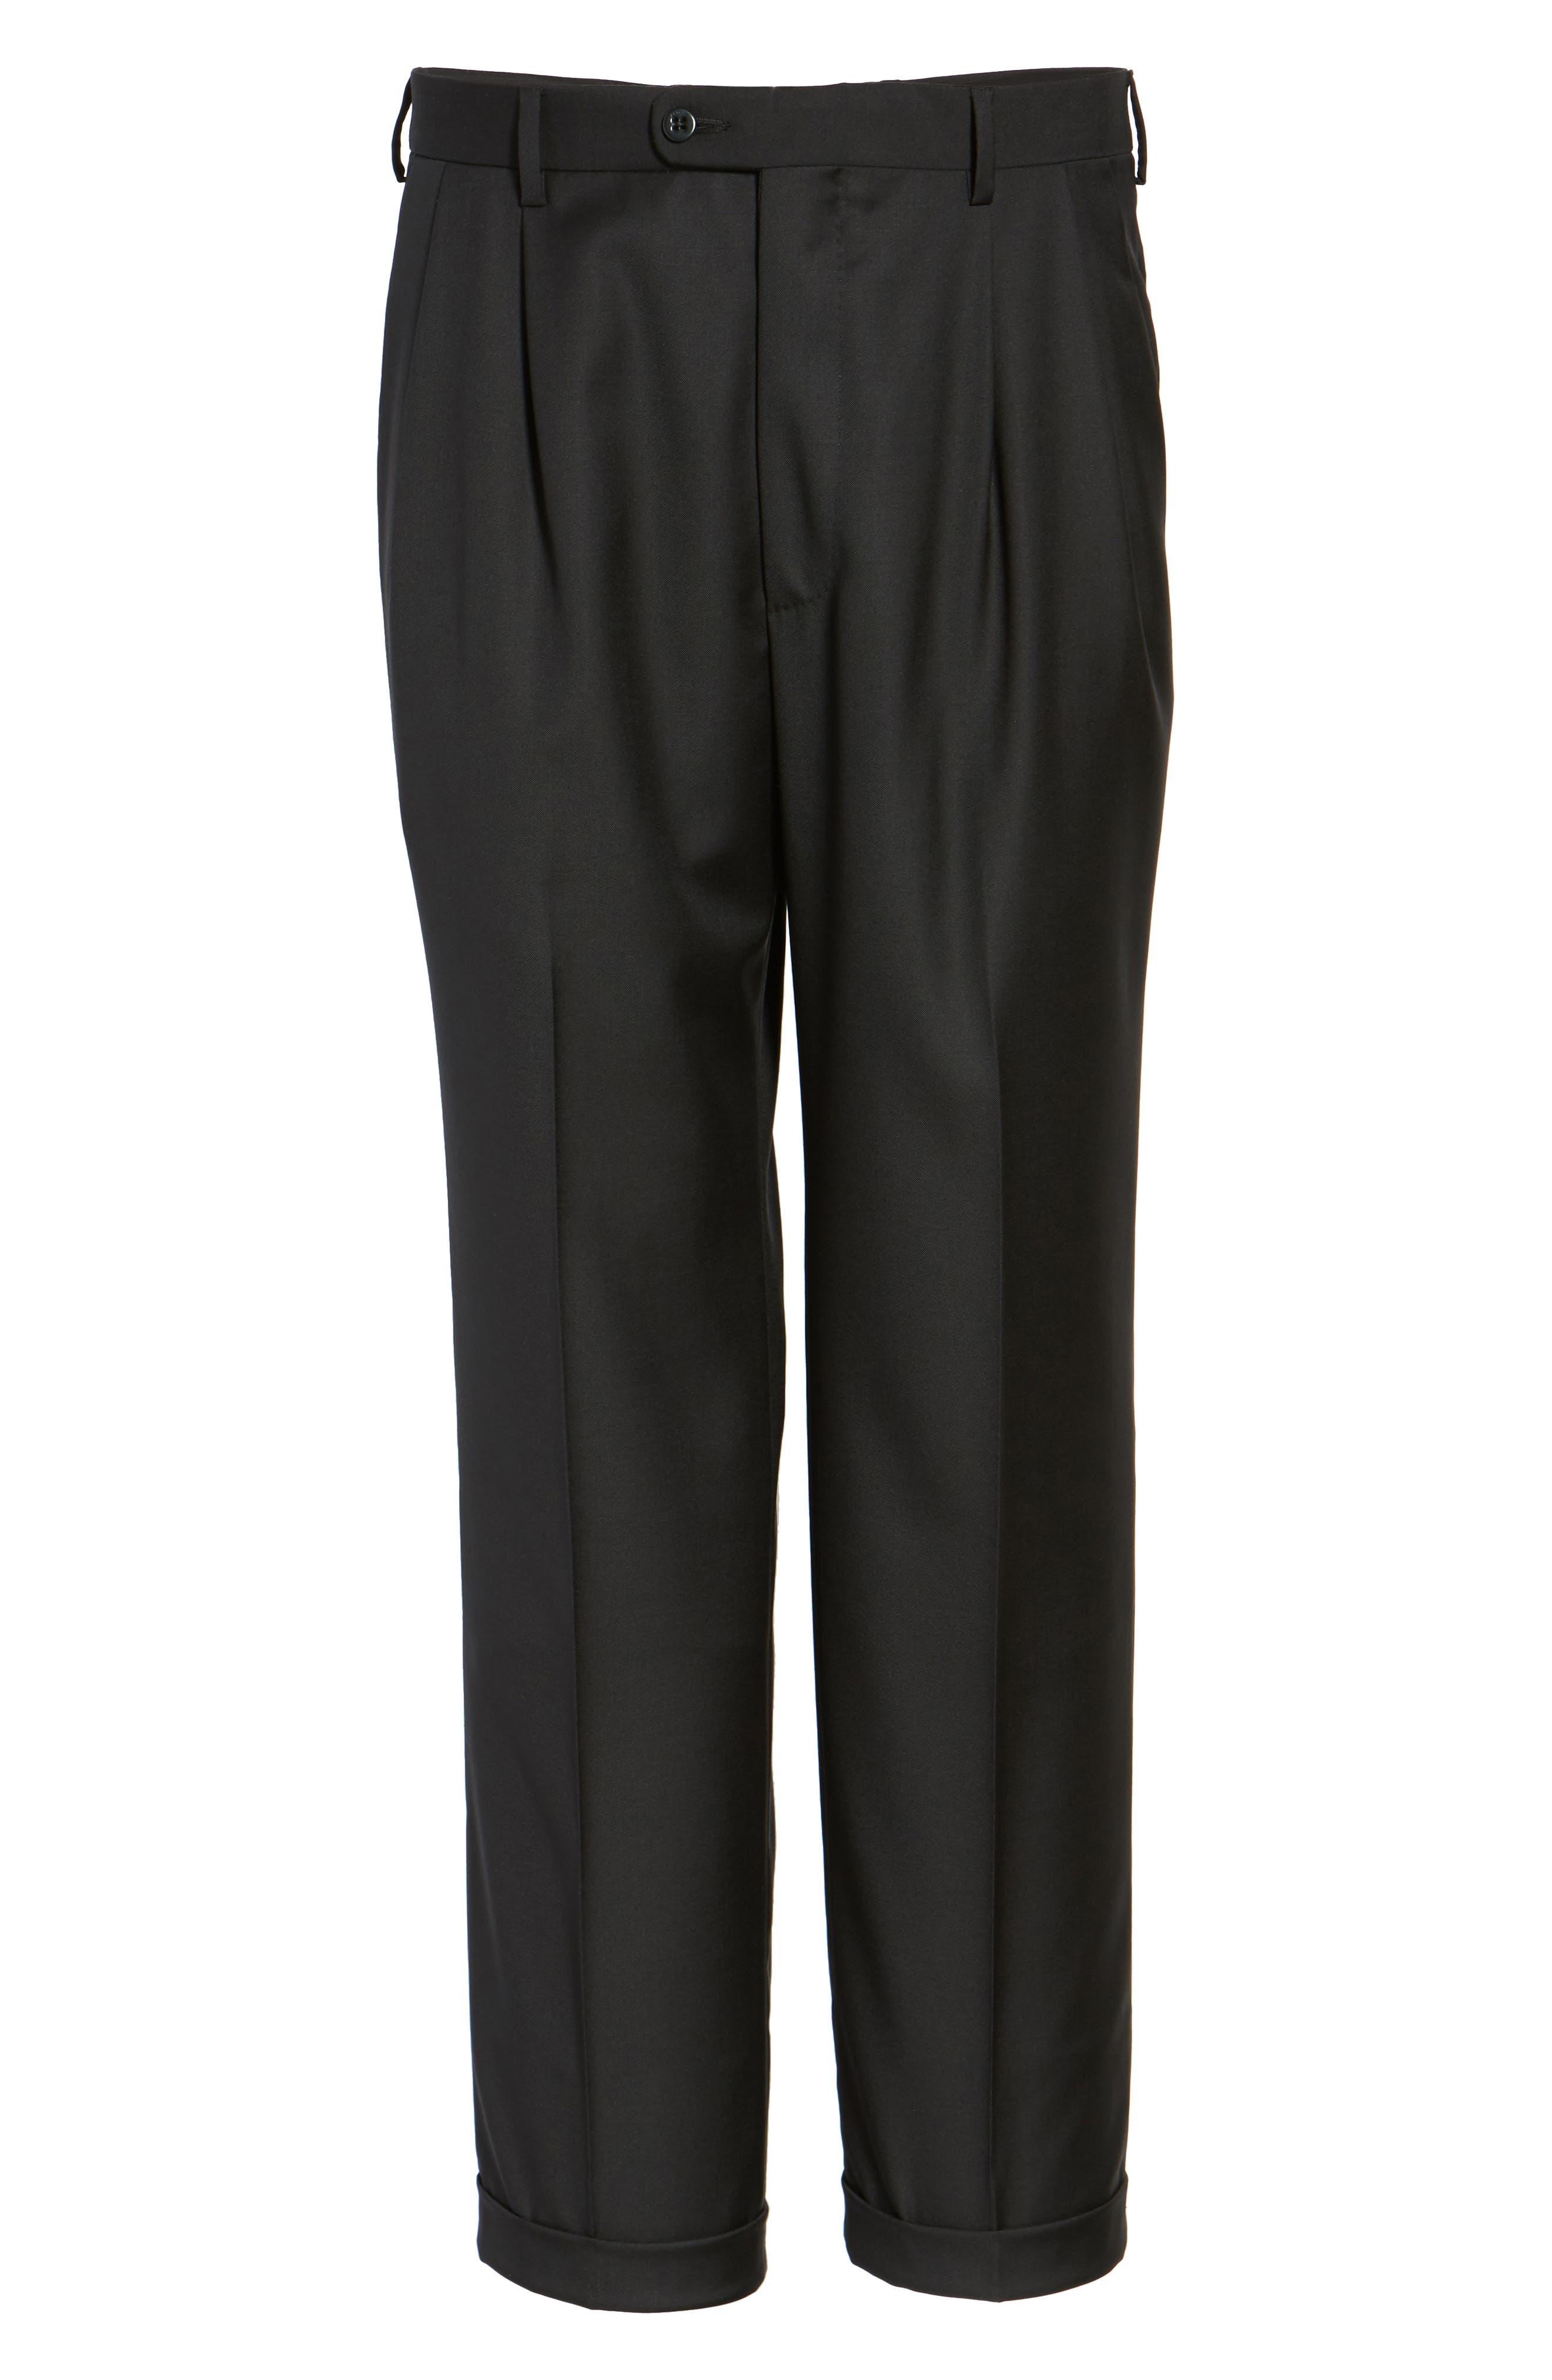 ZANELLA, Bennett Regular Fit Pleated Trousers, Alternate thumbnail 6, color, BLACK